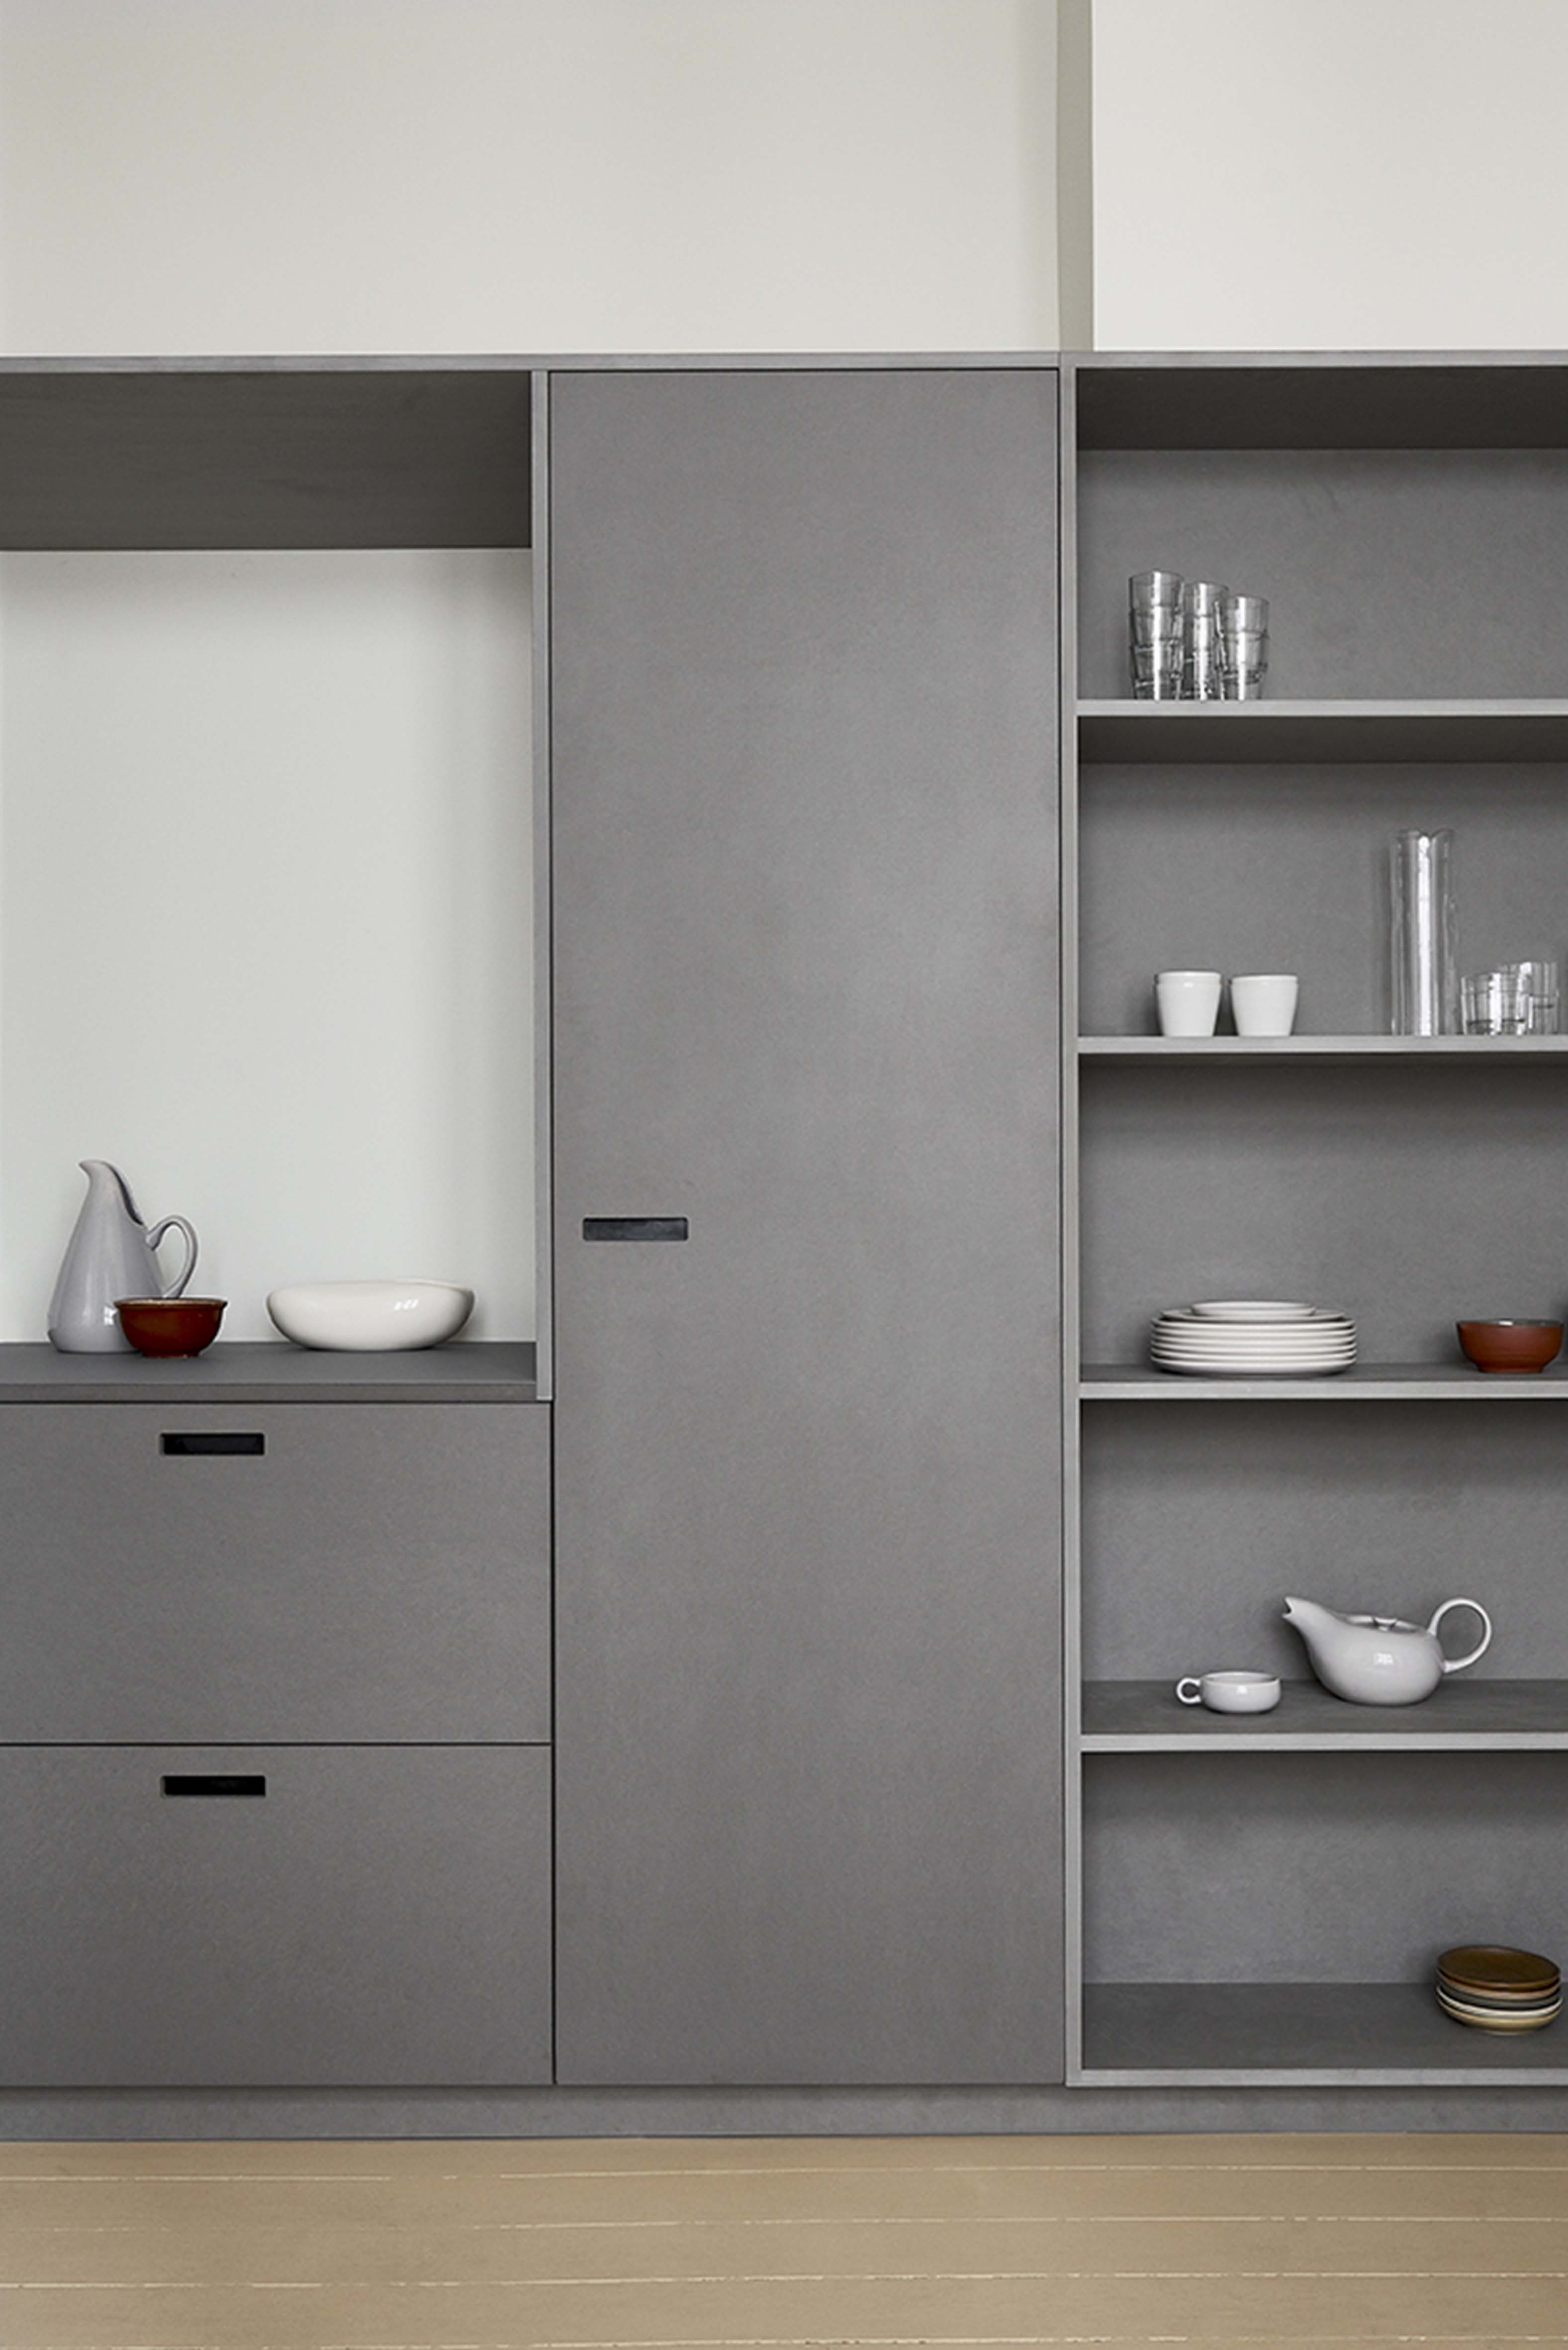 ikeahack-designer-kitchen-&shufl-raw-collection-light-grey-ikea hack-kithcen-from-andhsufl03